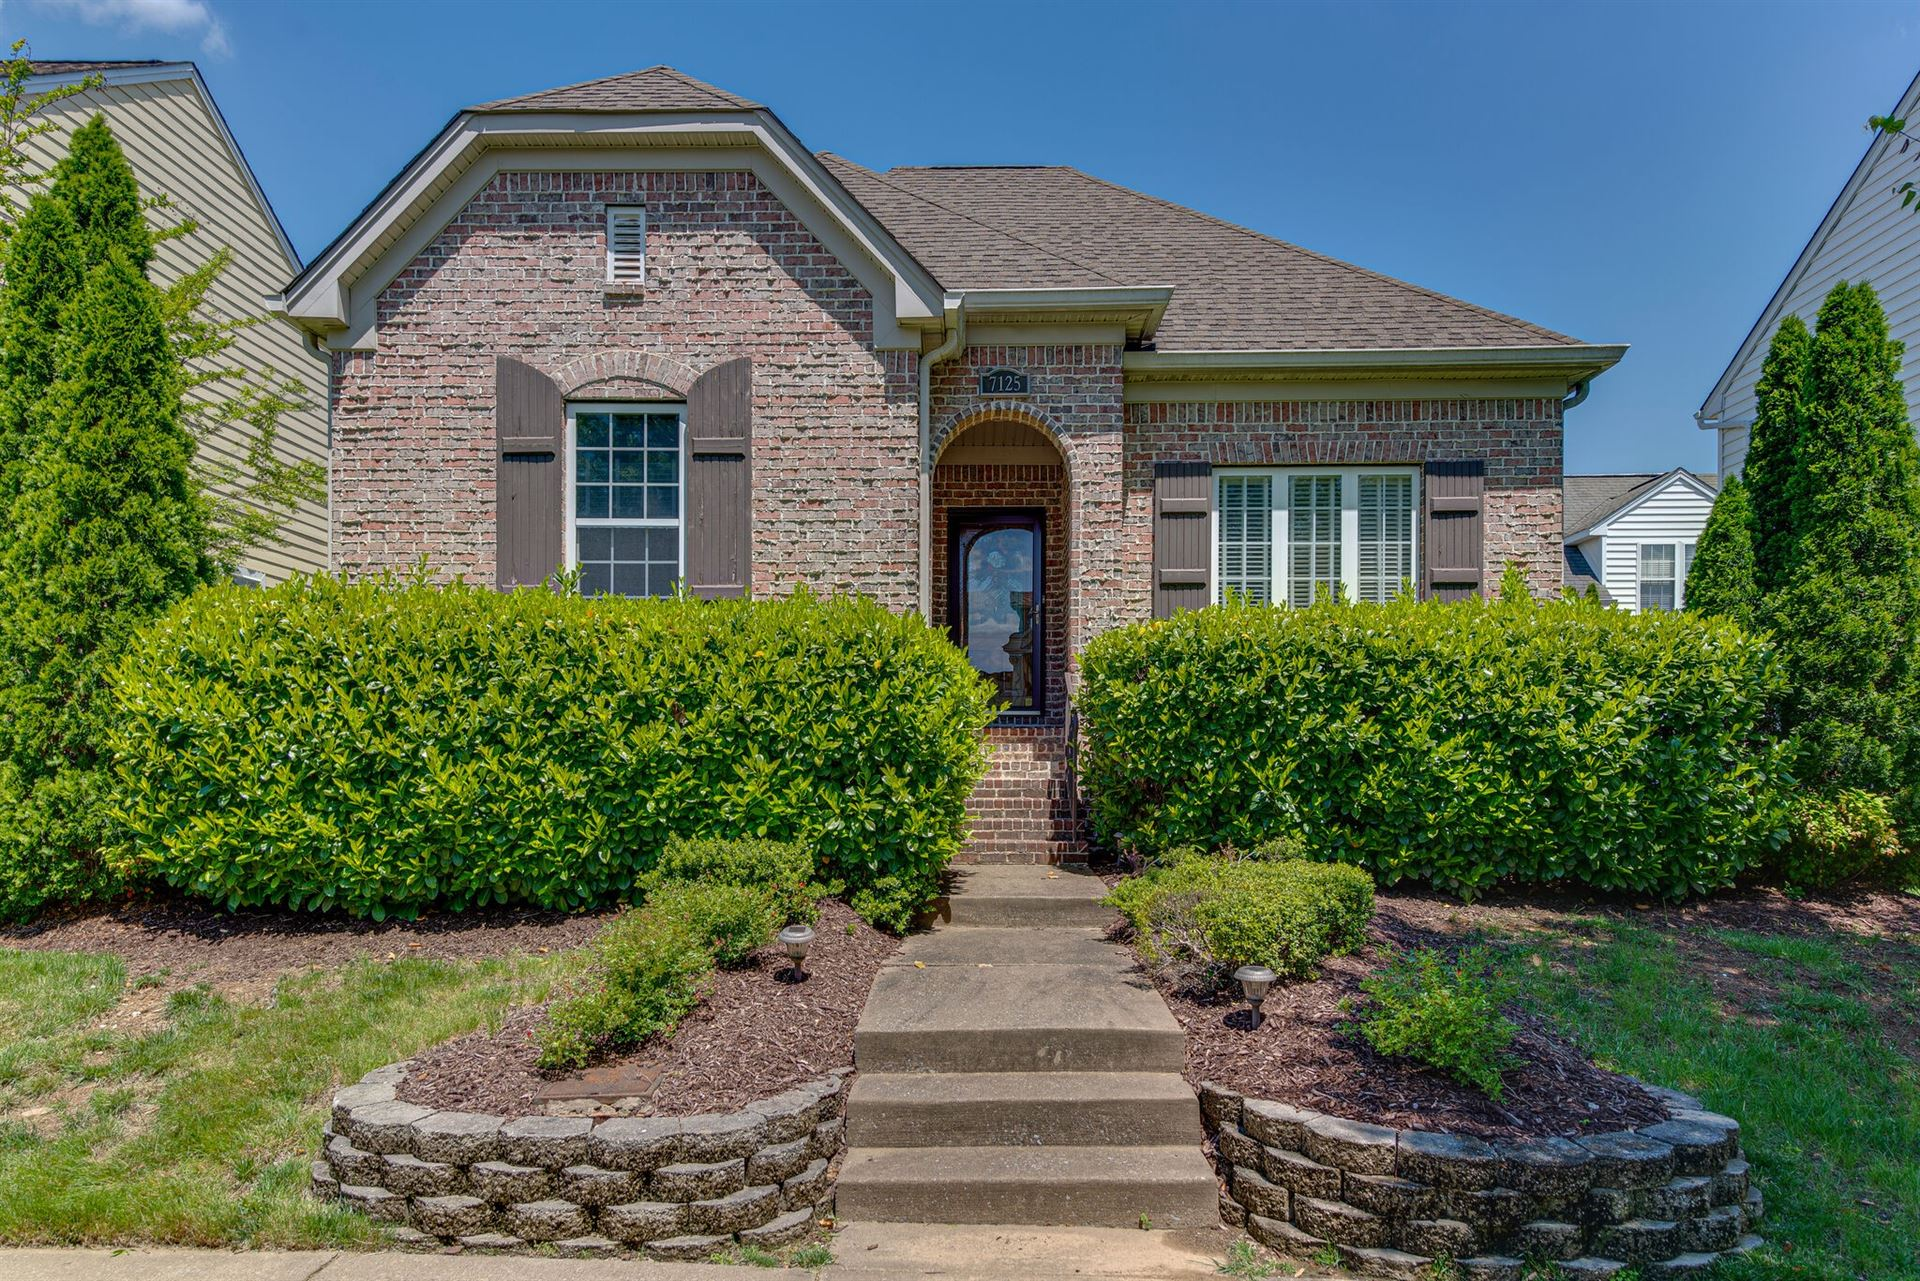 7125 Lenox Village Dr, Nashville, TN 37211 - MLS#: 2251989